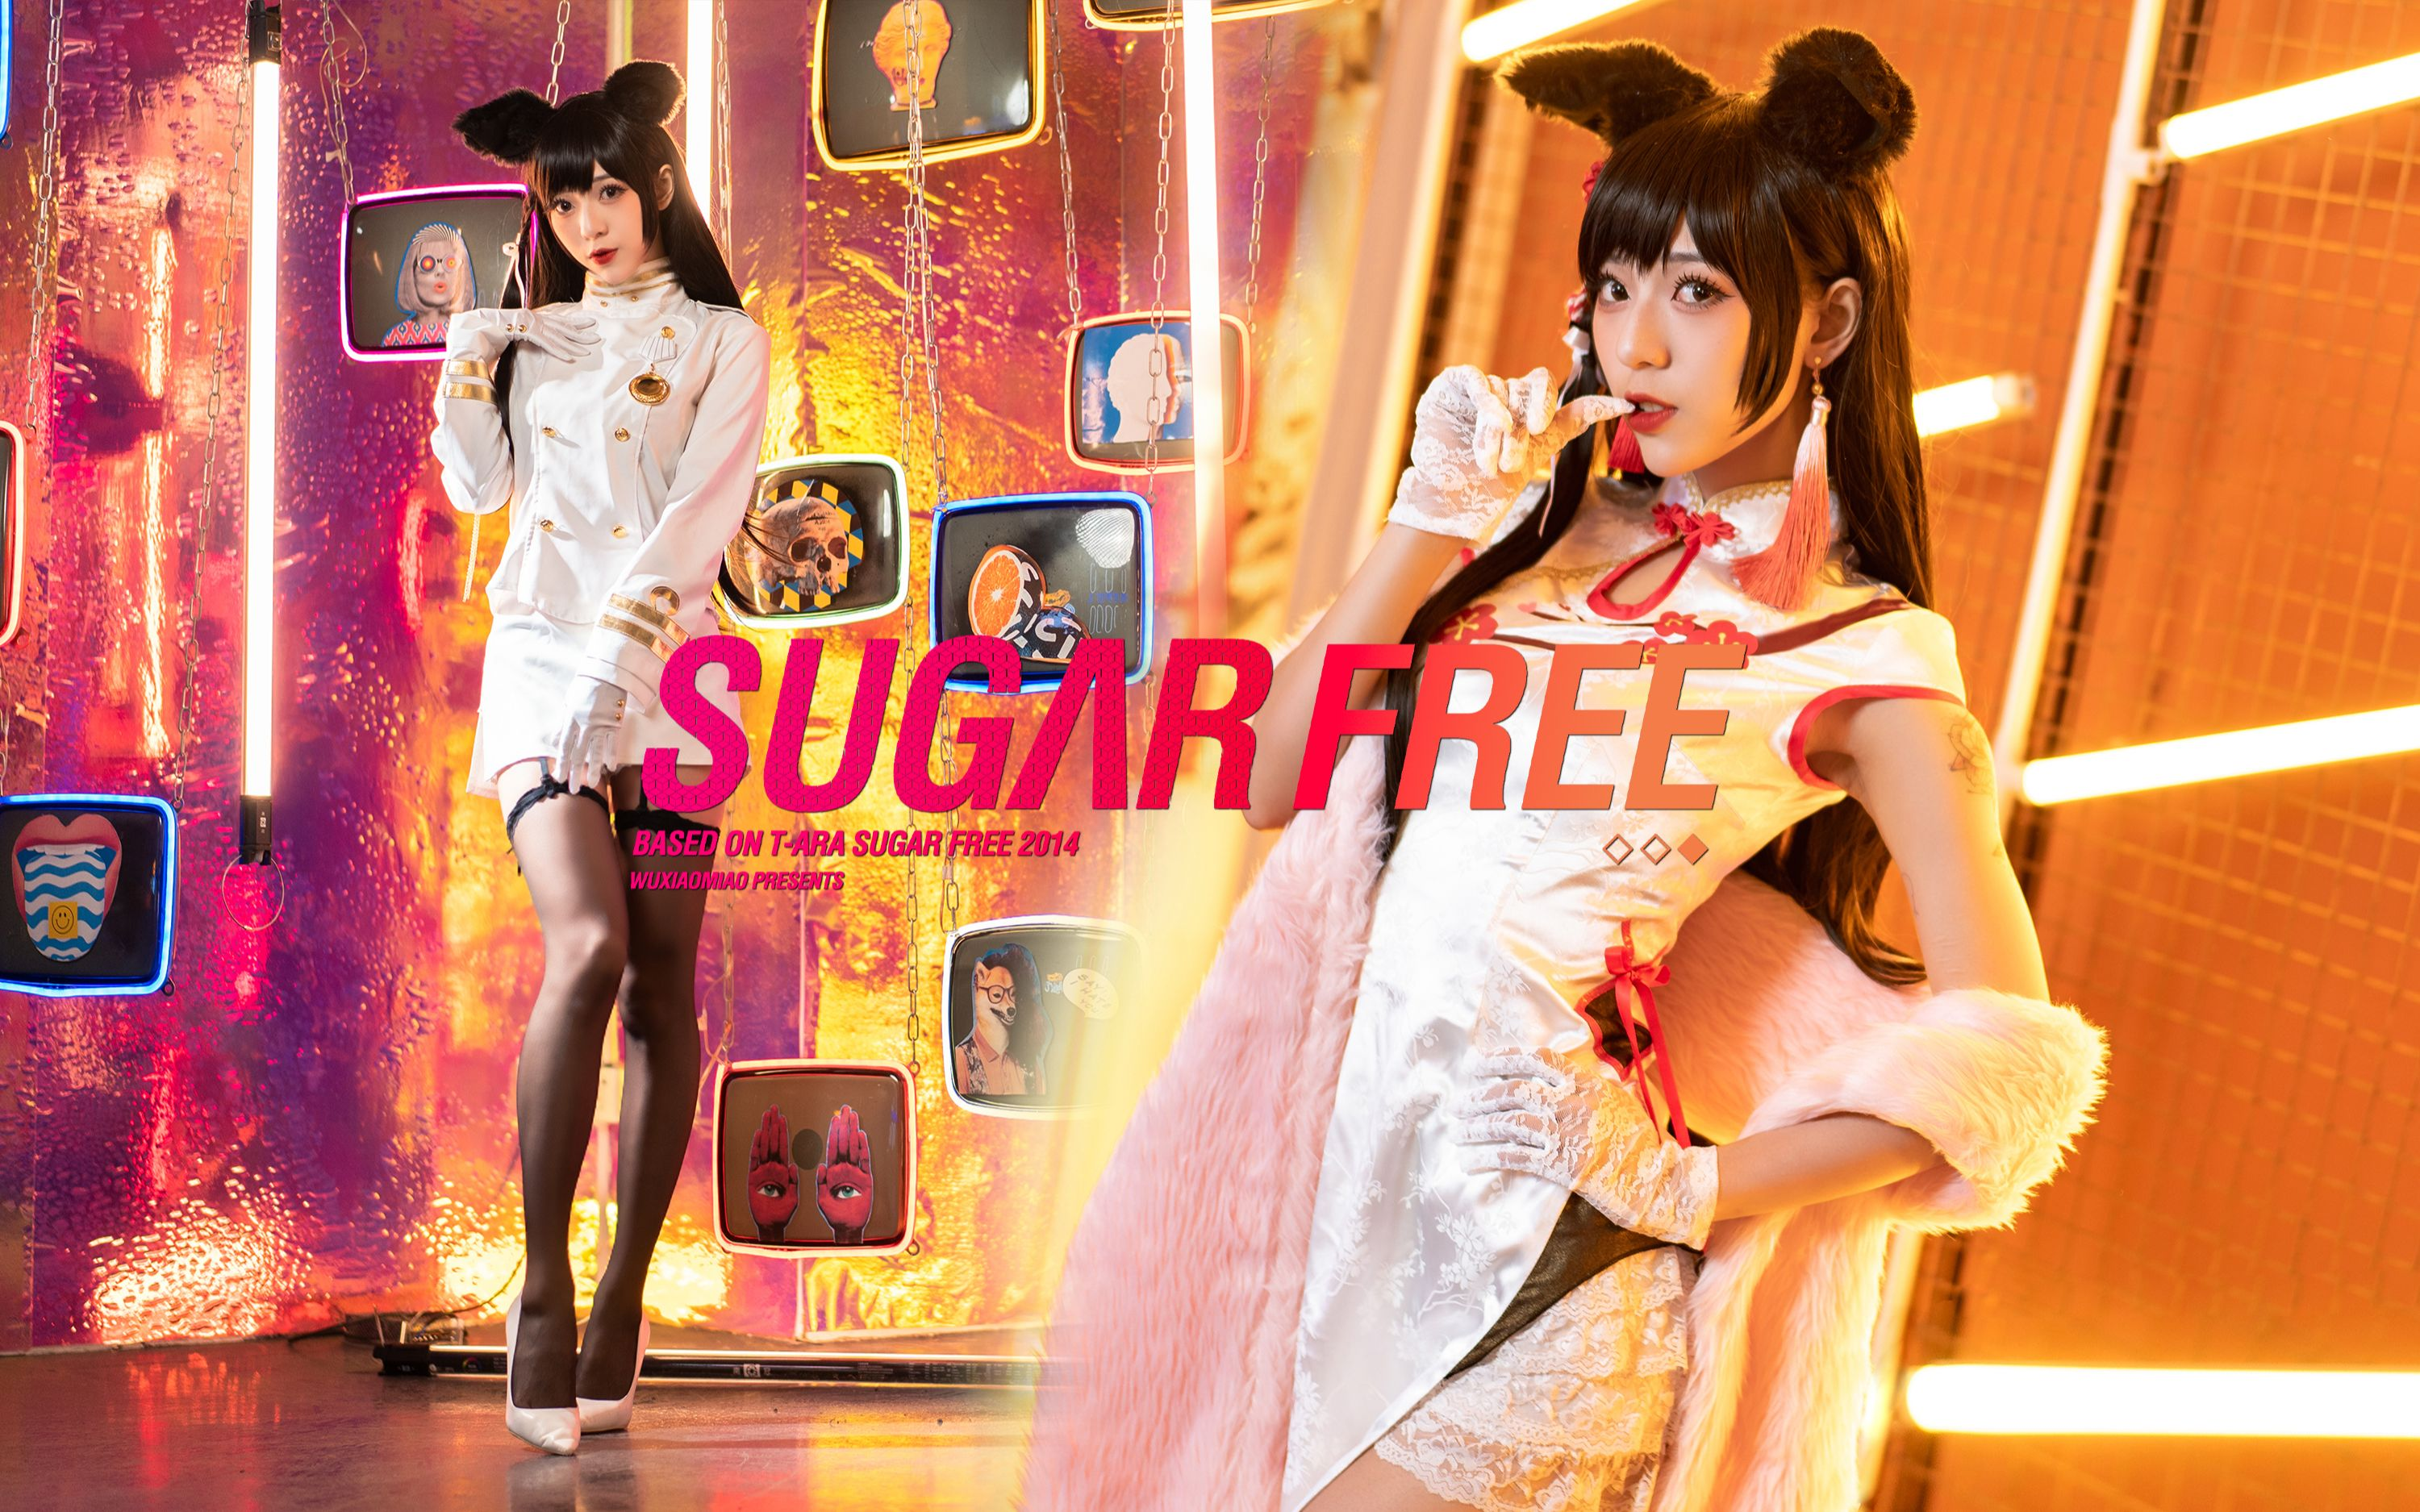 【舞小喵】指挥官_跟我一起Sugar_Free吧!_SUGAR_FREE.mp4